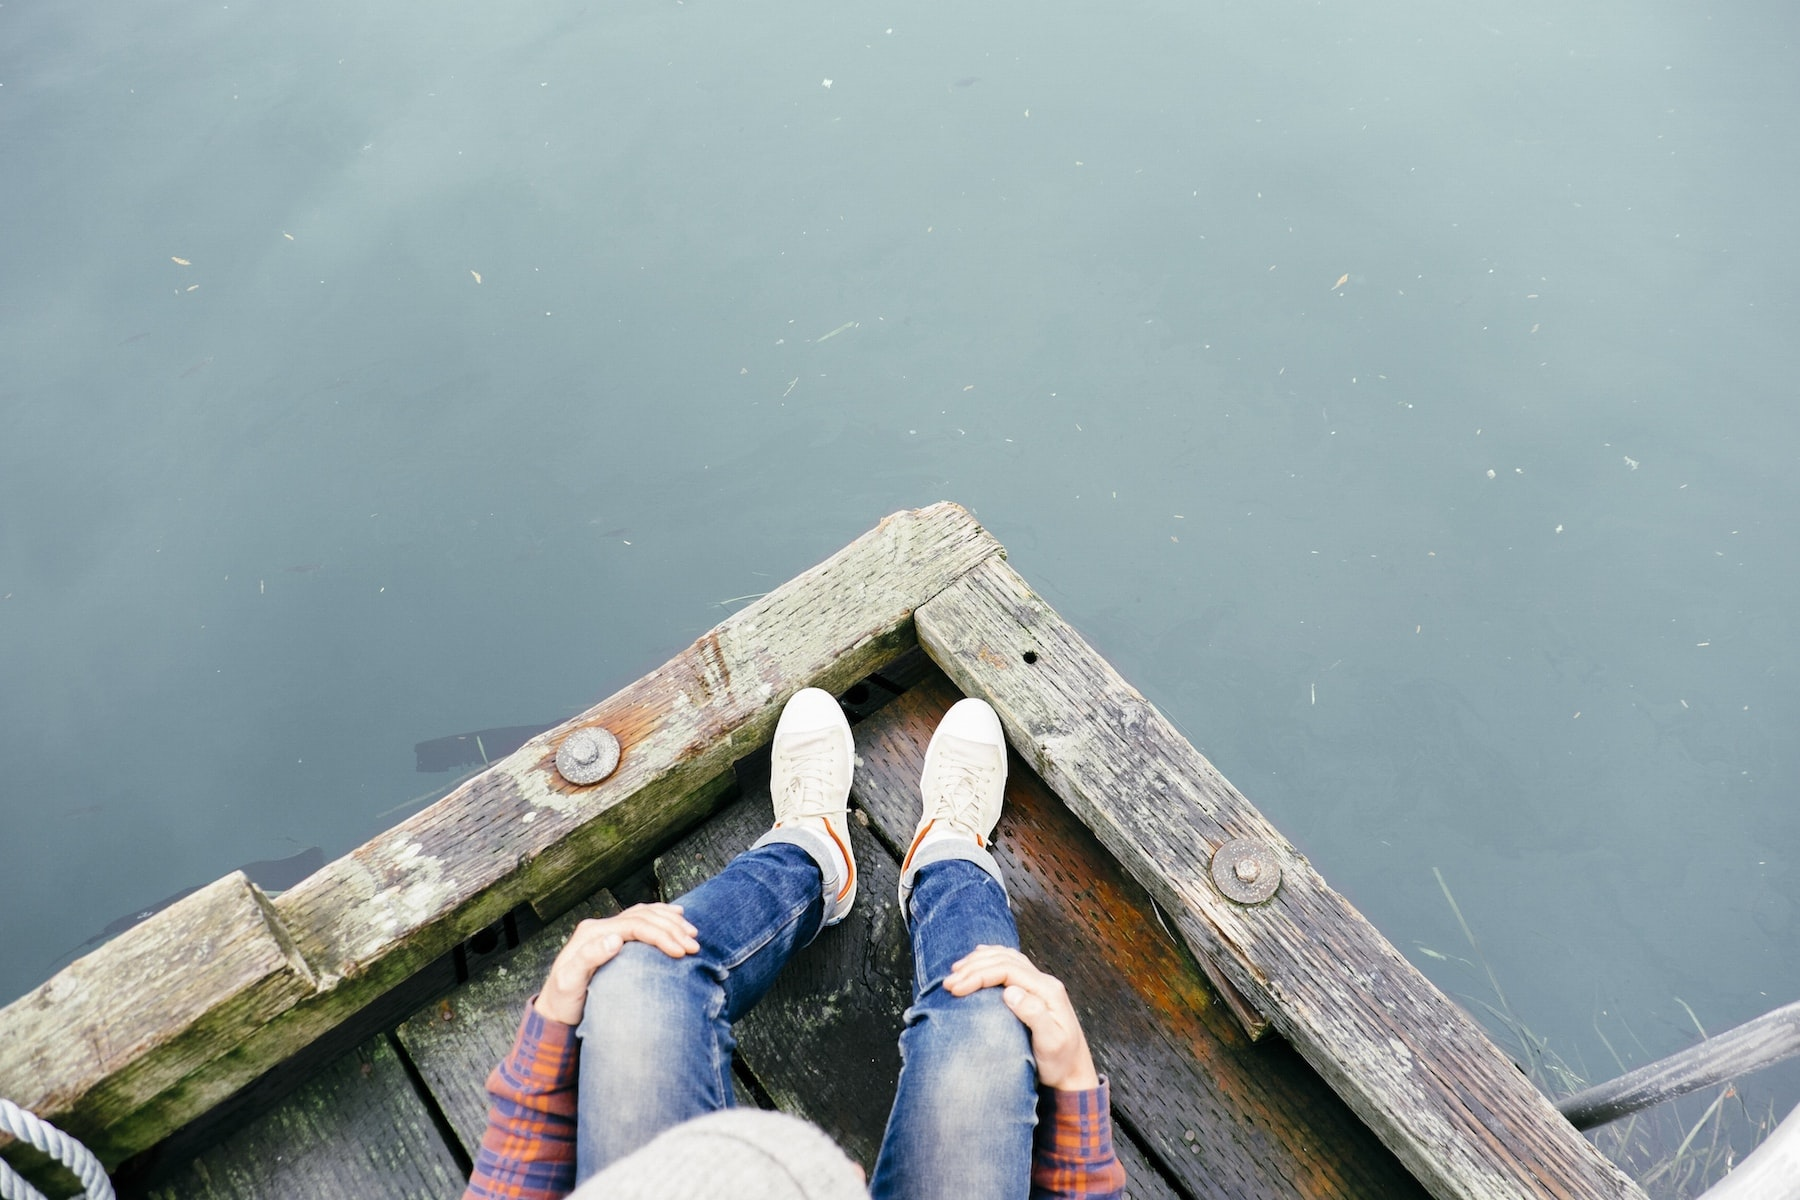 A look down on a person sitting at the edge of a dock wearing jeans and sneakers